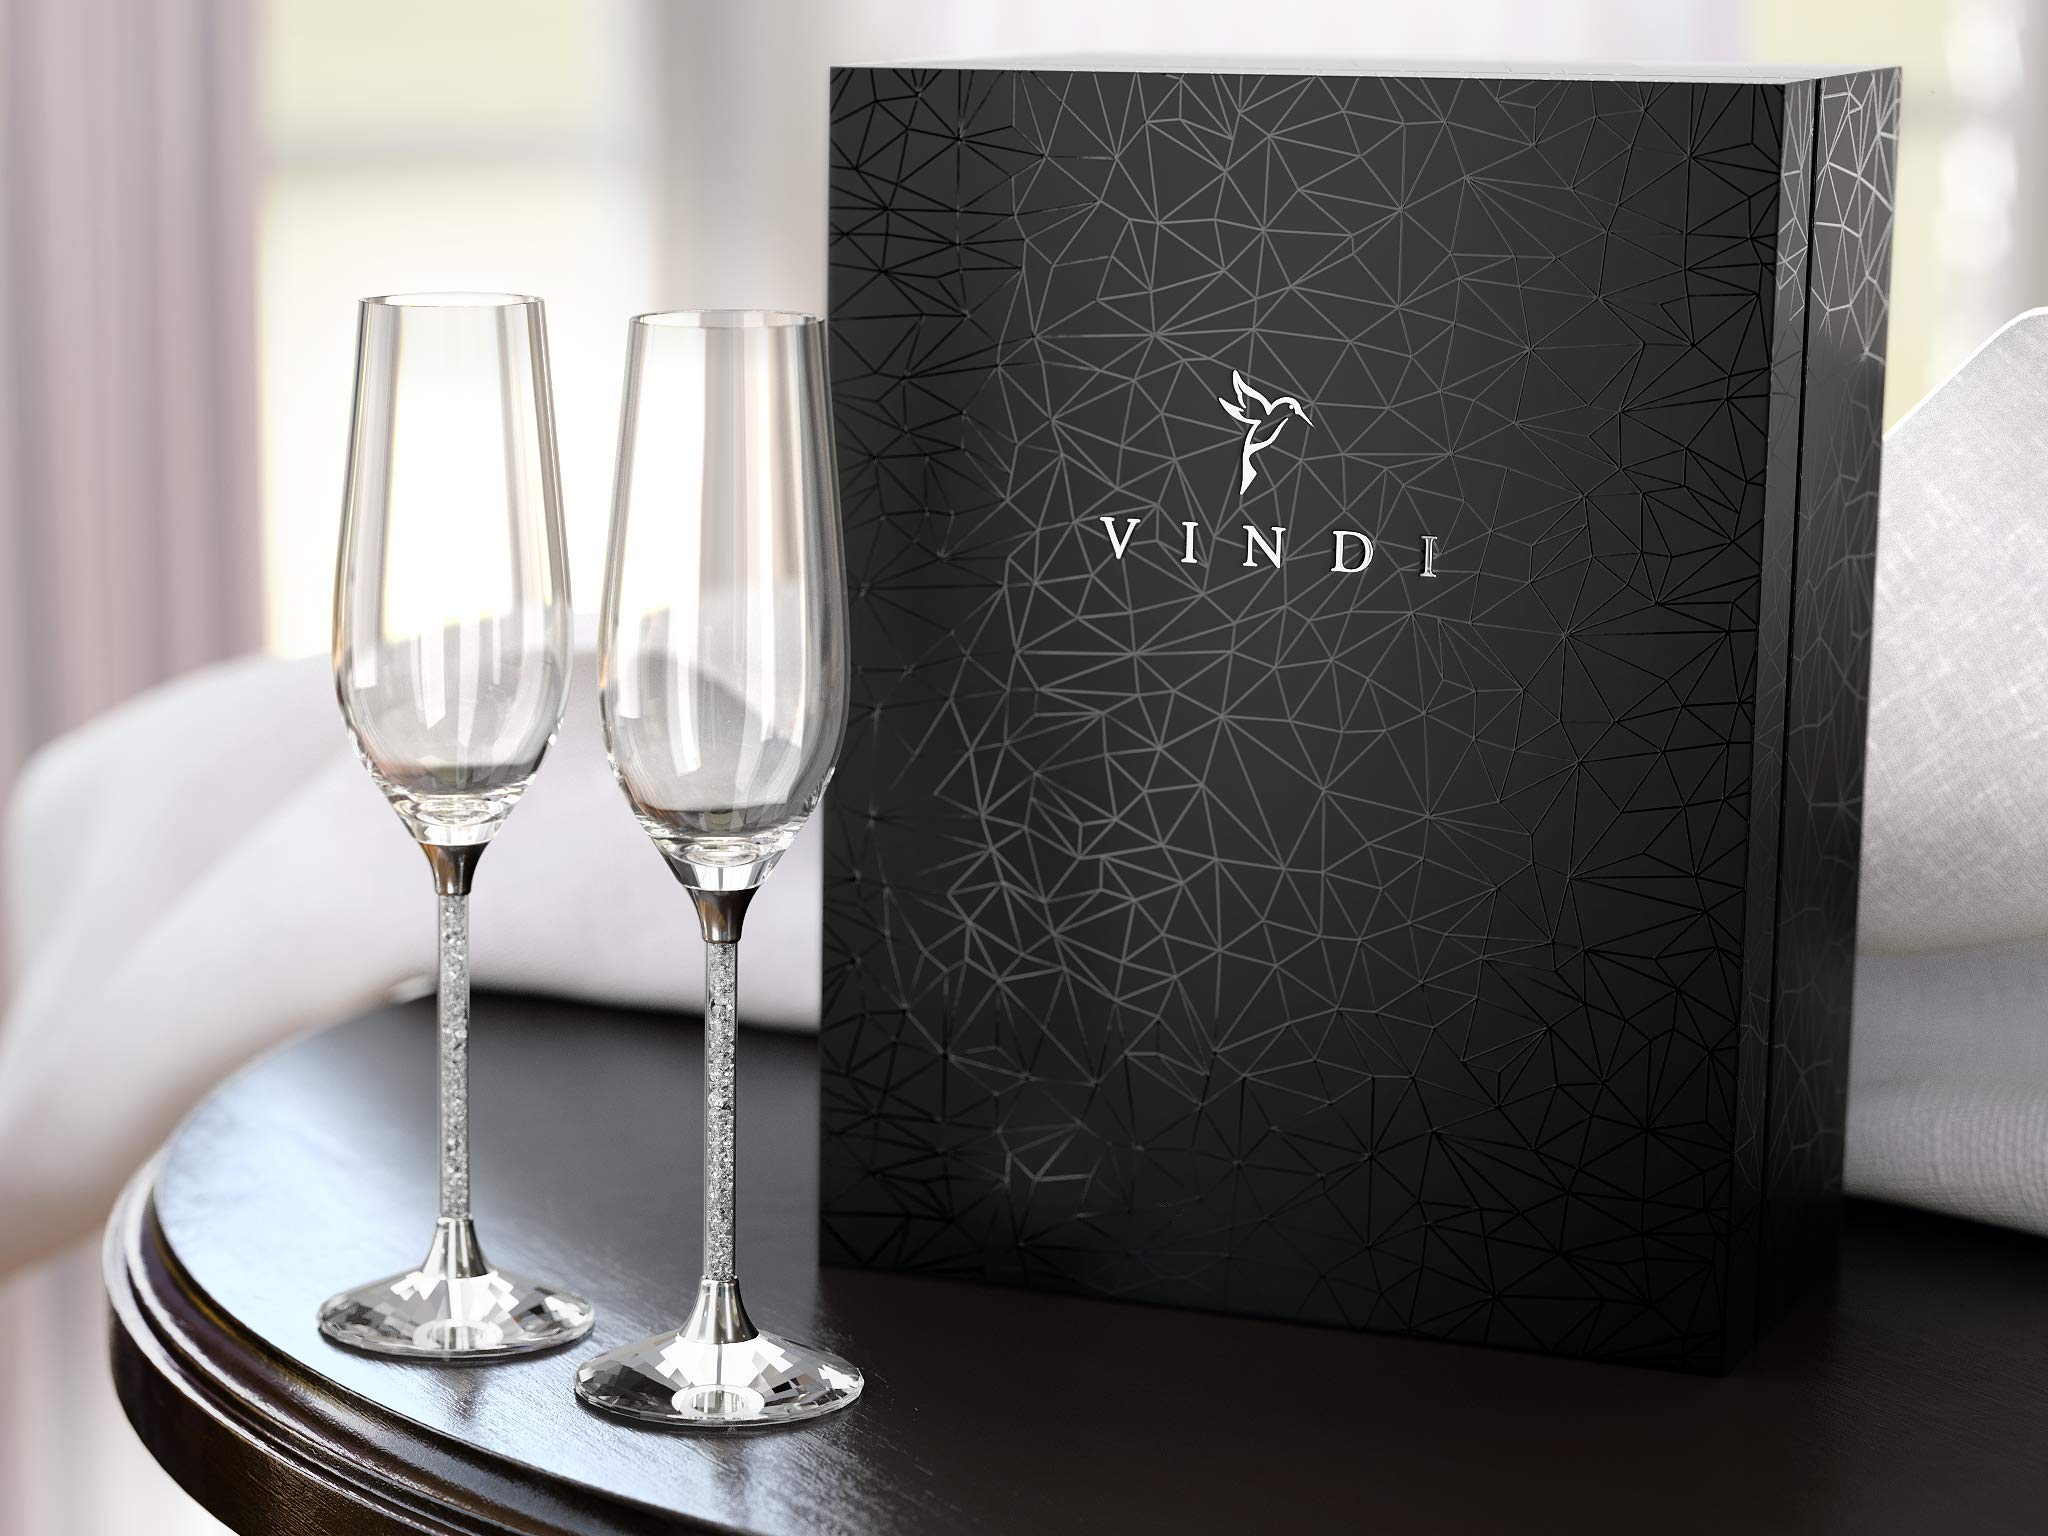 Perfect Wedding Gift - Crystal Champagne Glasses by Vindi Design. Toasting Flutes. Genuine Crystals in Stem. Lead Free. Set of 2 + Gift Box, Black. by Vindi Design (Image #4)